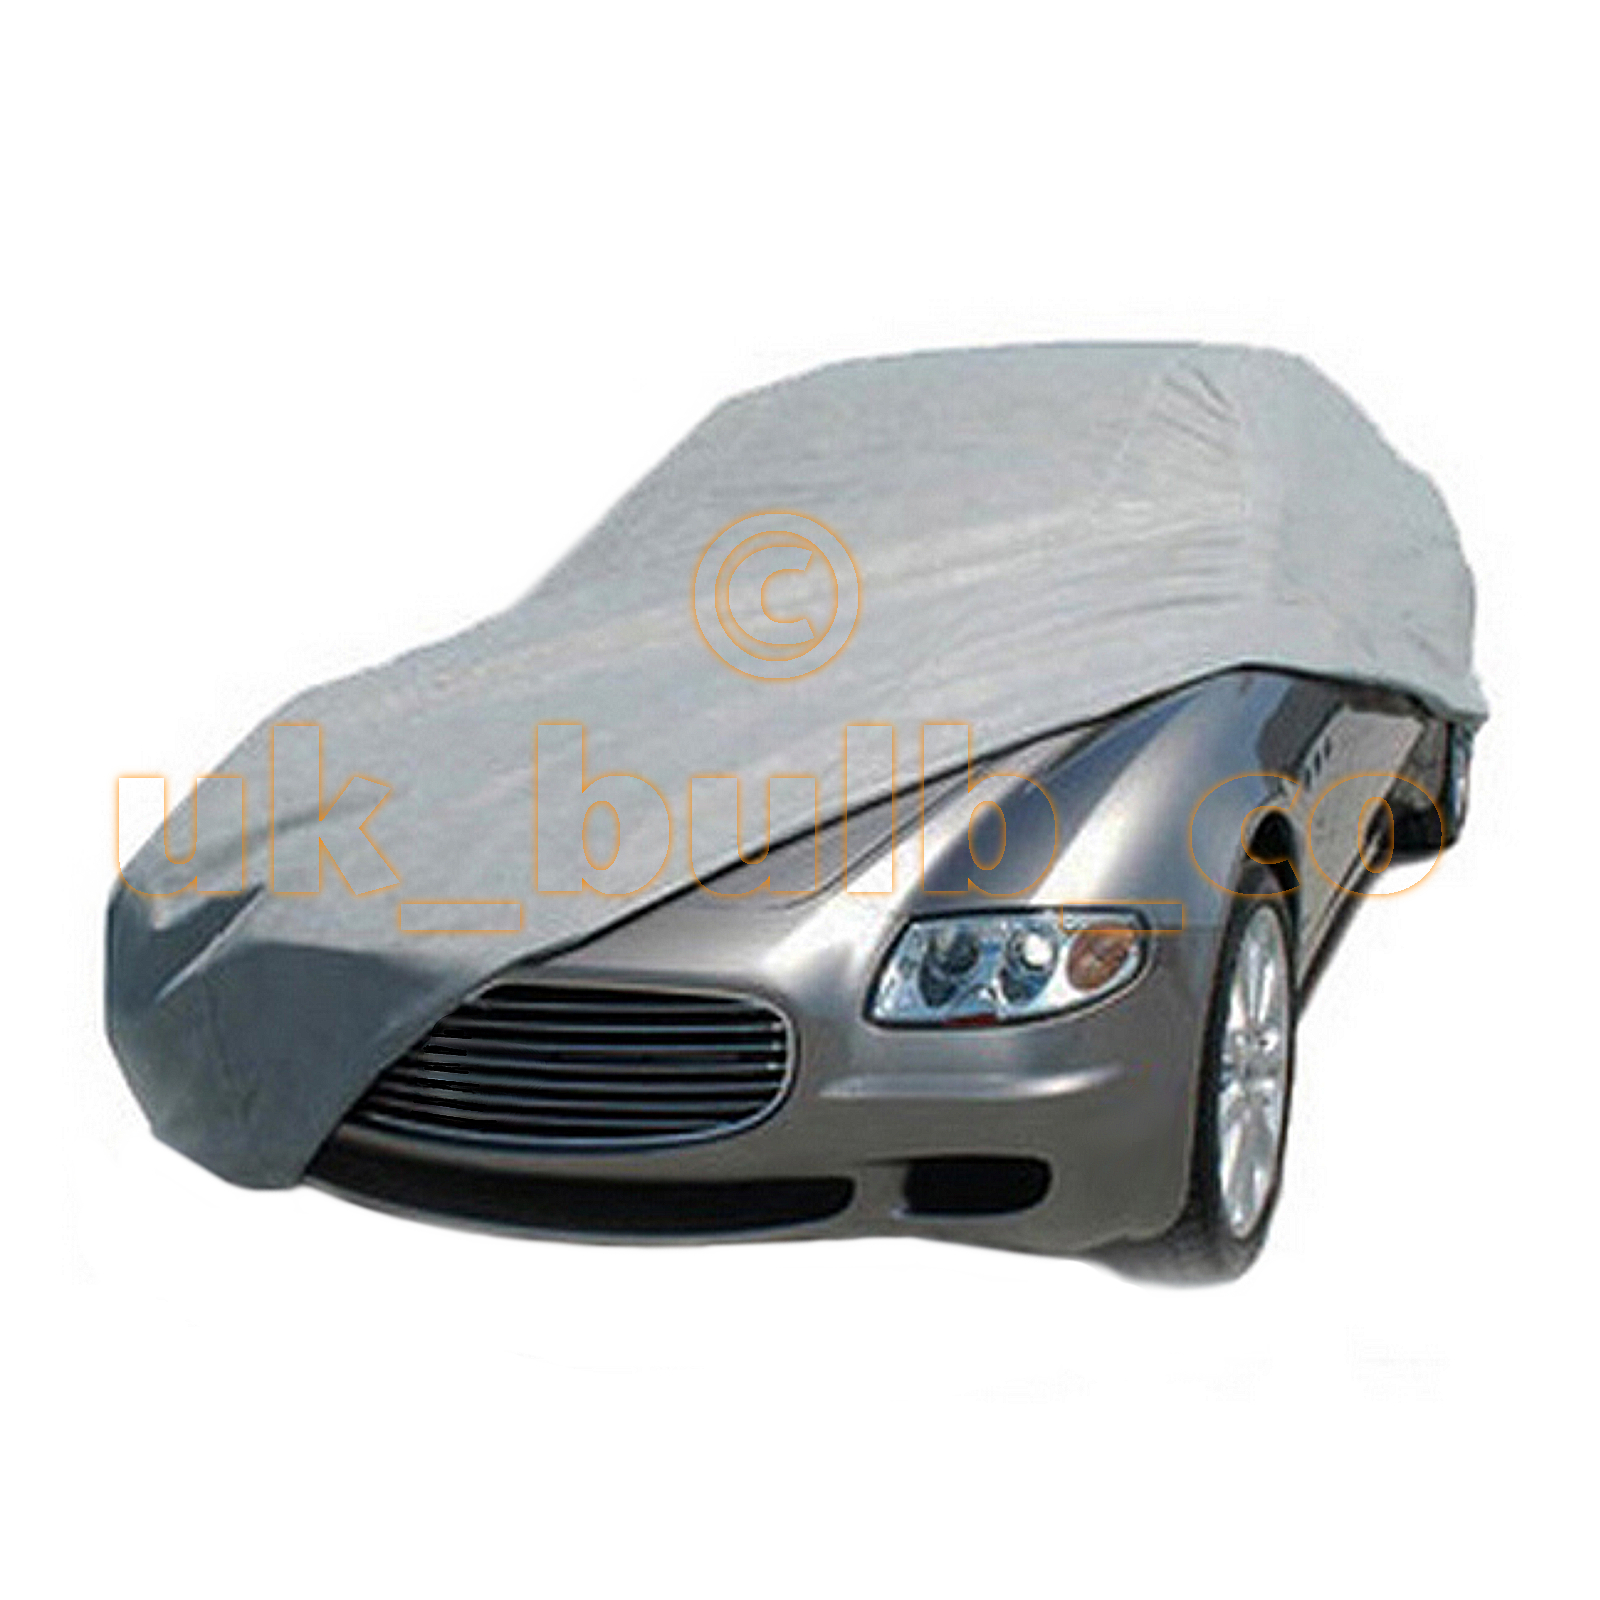 Silver Waterproof Car Cover To Fit Bmw Z3 Models Ebay